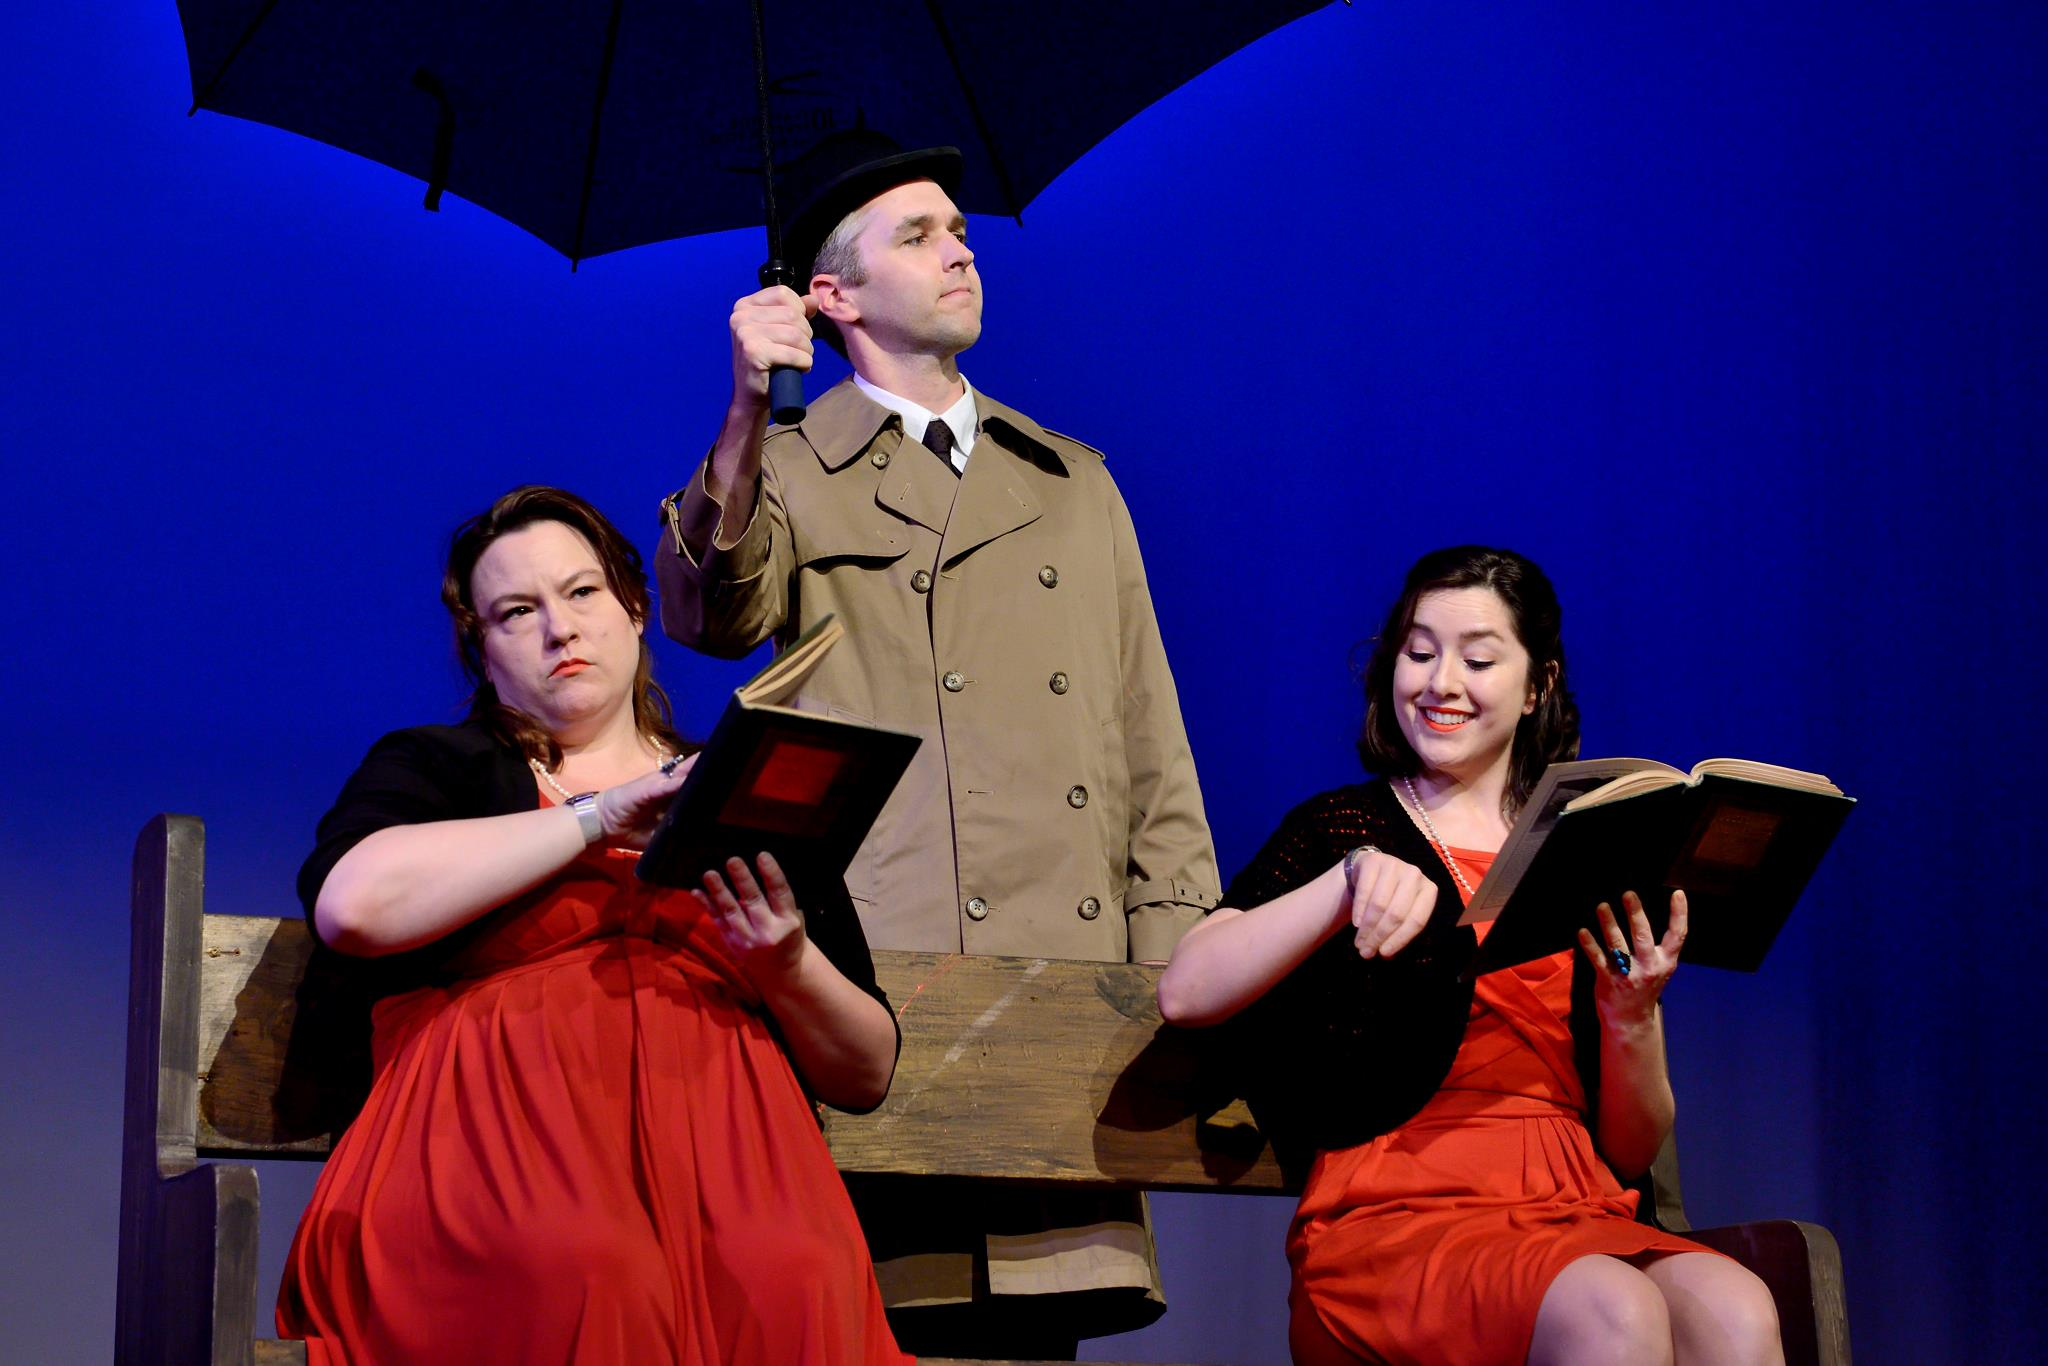 Amelia Meckler, Sam Read, and Wonder Russell in Alfred at 14/48: The World's Quickest Theatre Festival. Photo by Joe Iano.